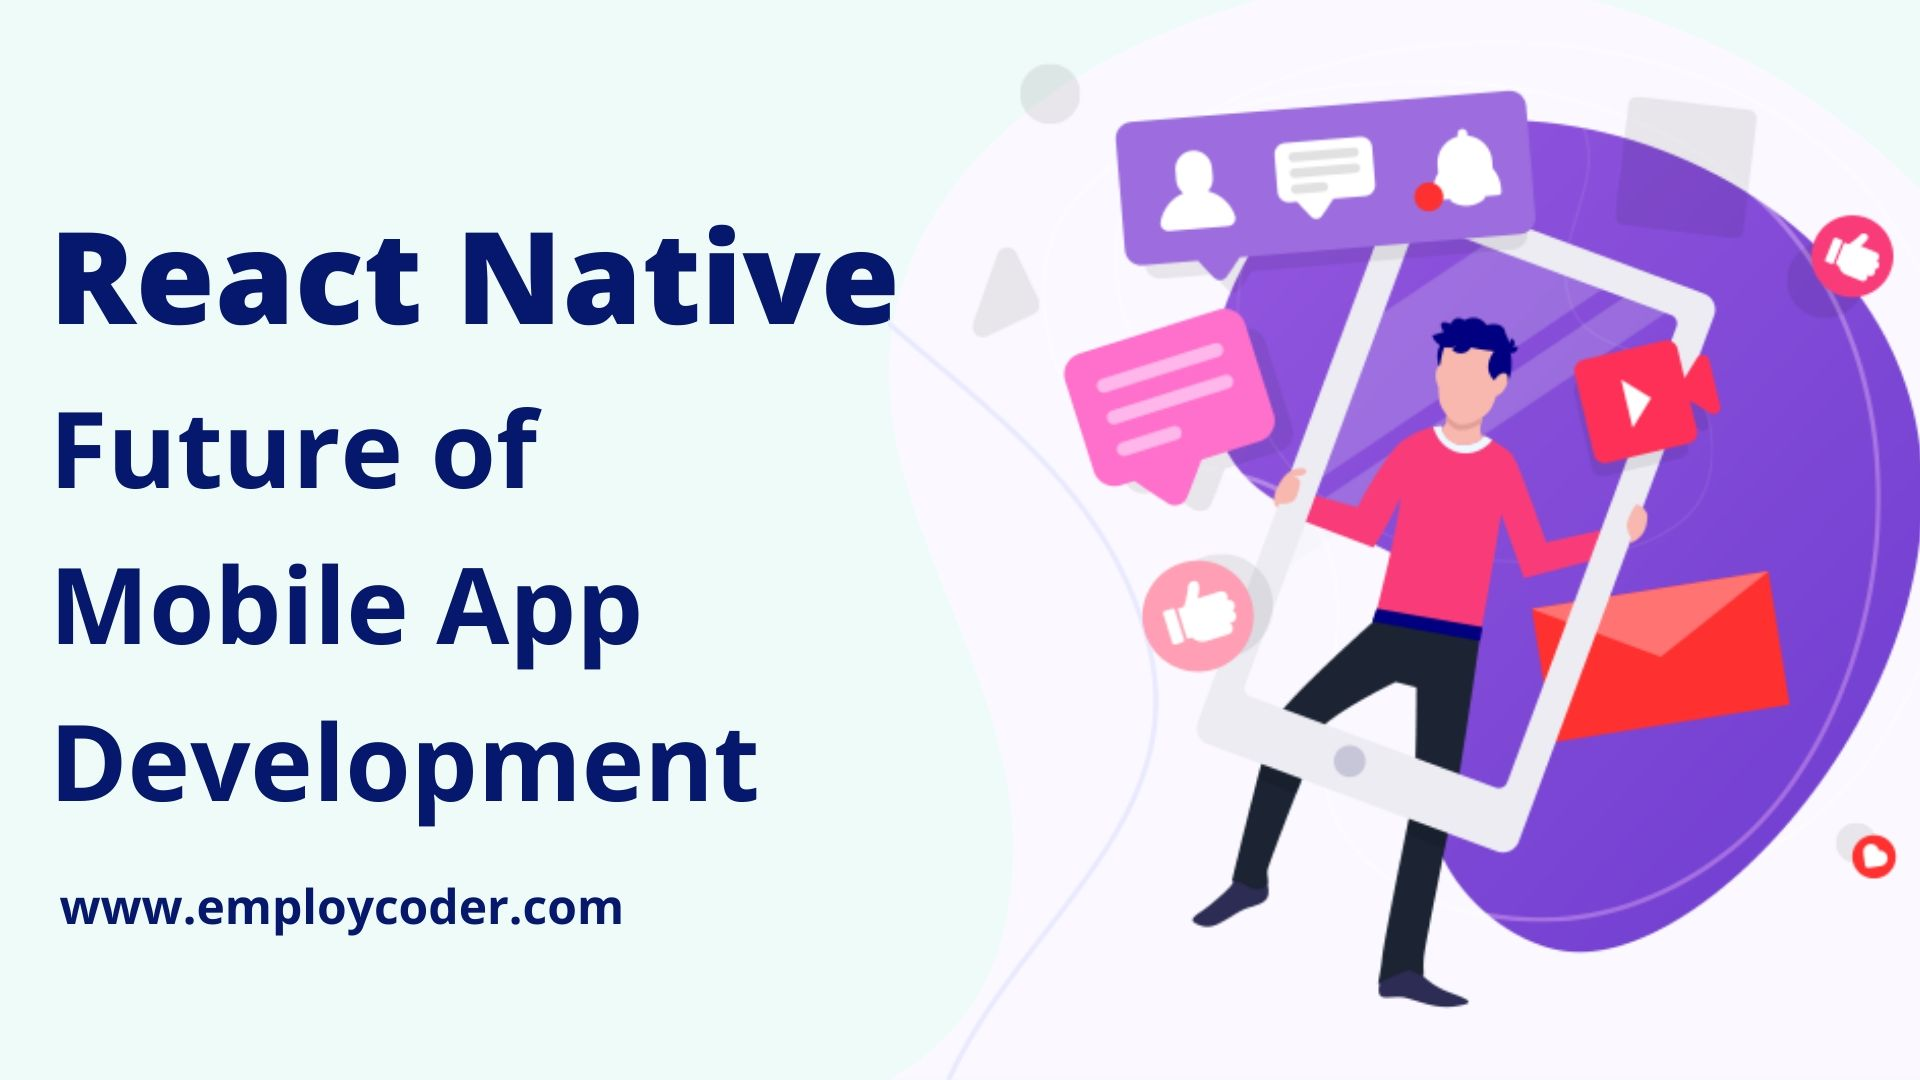 Why to choose React Native for Mobile App Development?